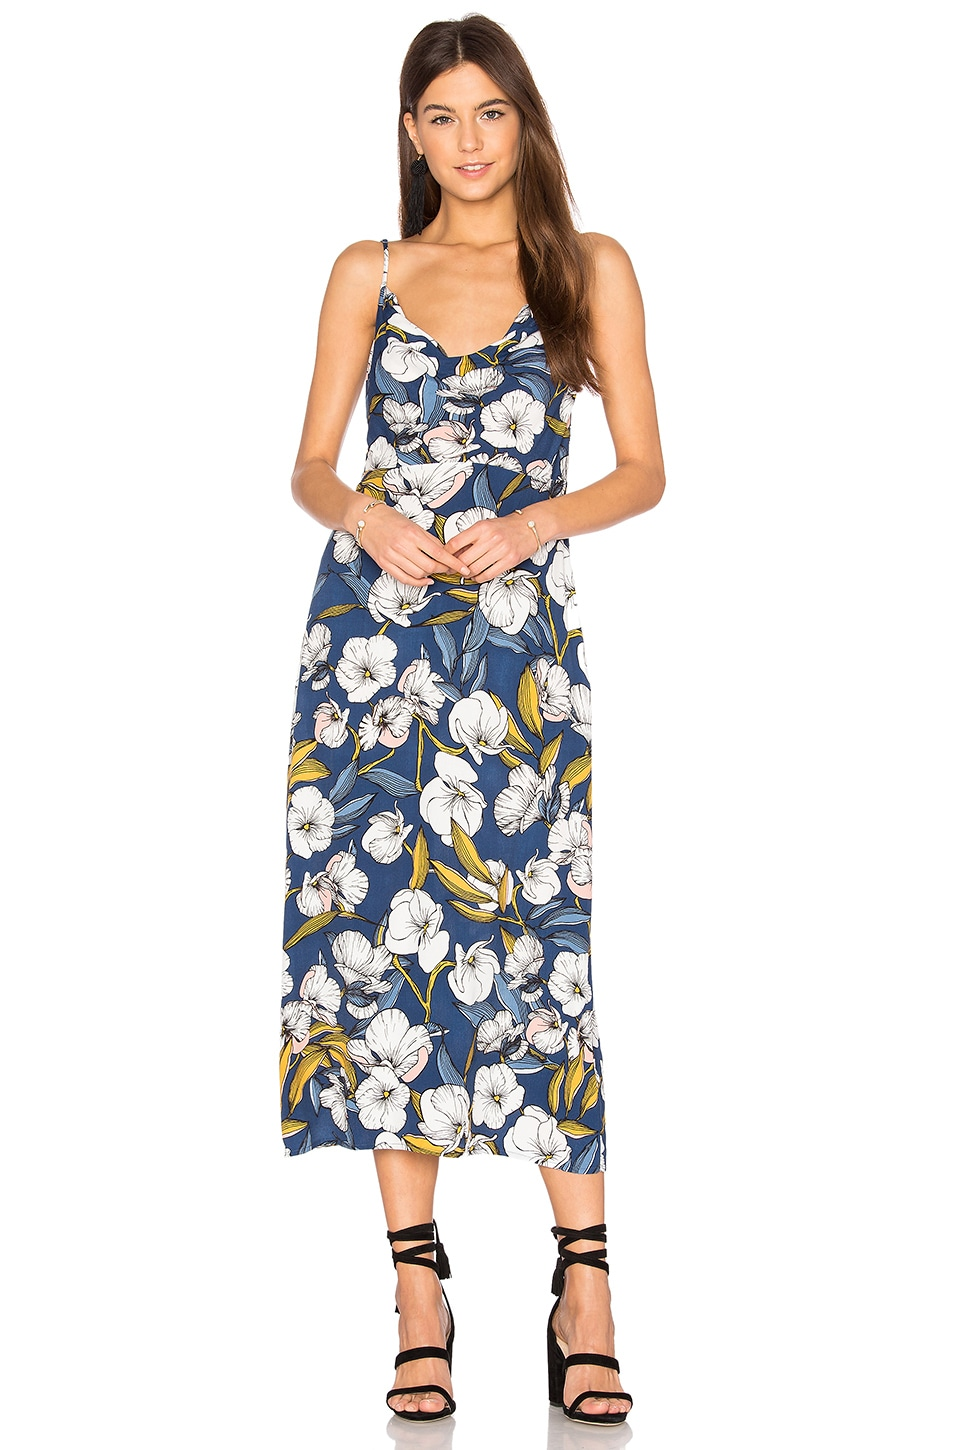 Pacifico Midi Slip Dress